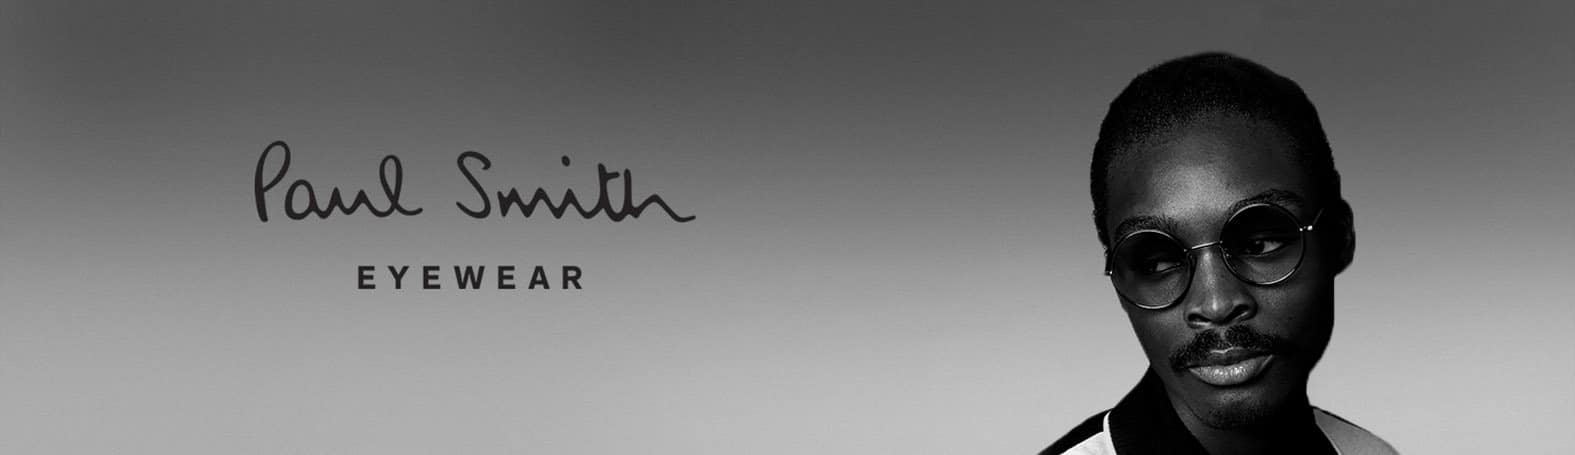 new_paul_smith_banner_20191